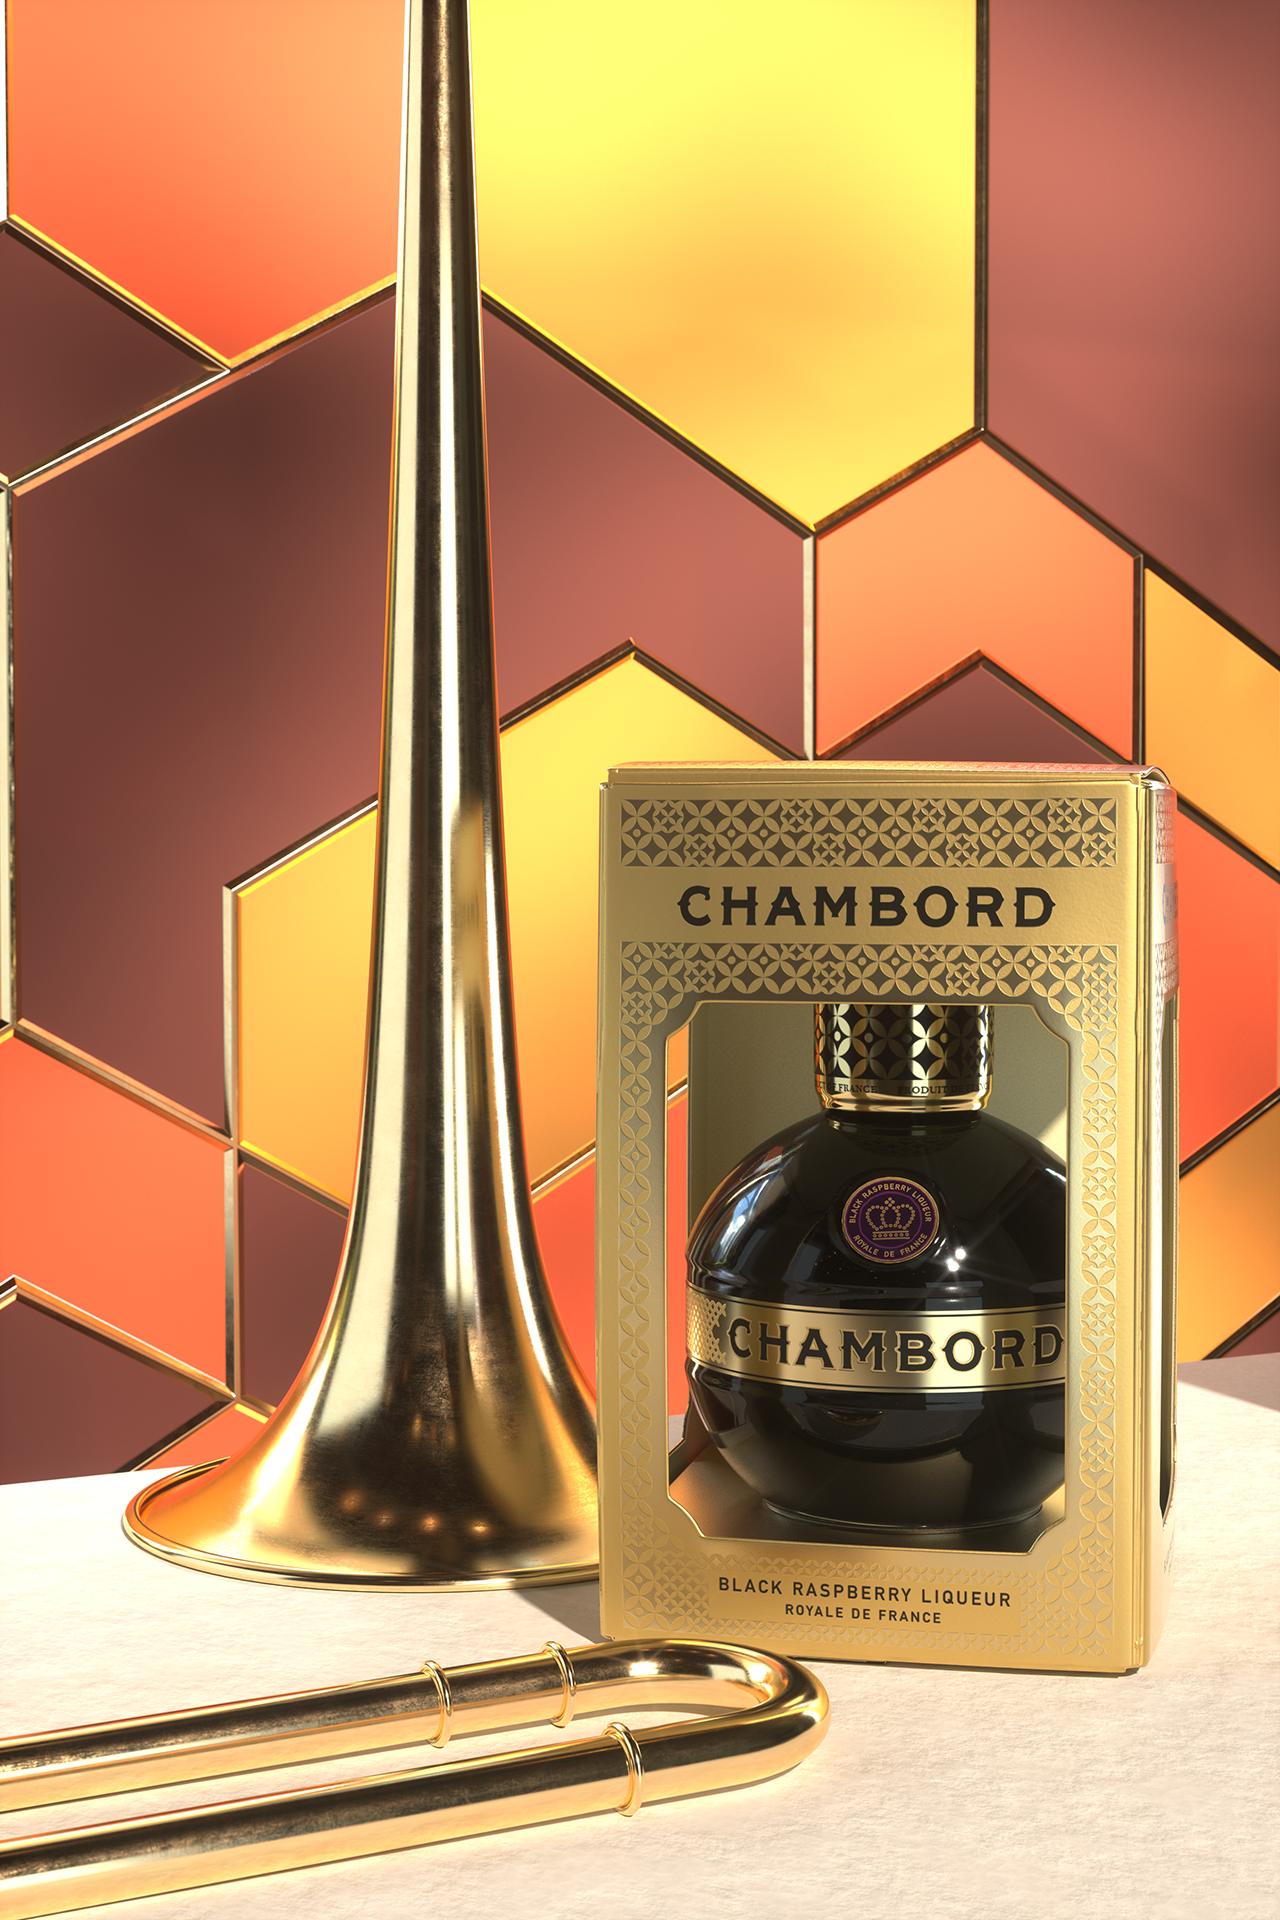 Chambord_Autumn Boxed v2 by Eskimo Square.jpg